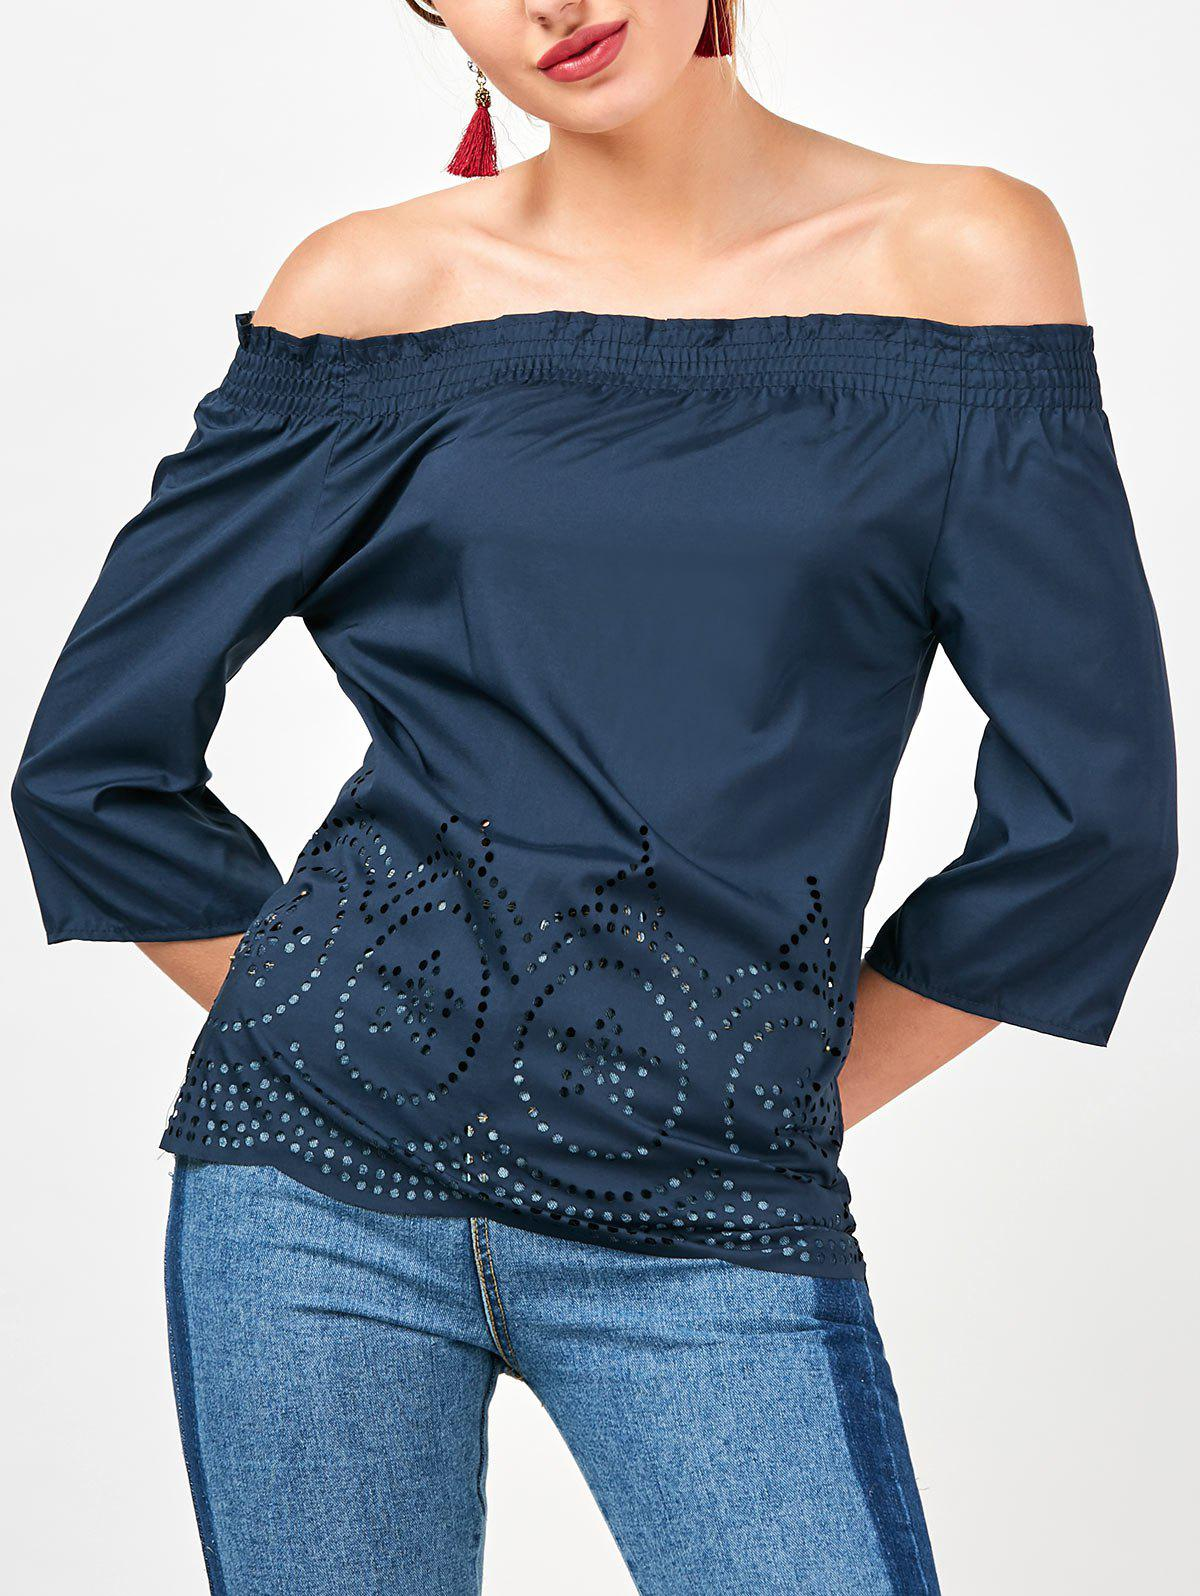 Off The Shoulder Ruffled Openwork Blouse - CADETBLUE L